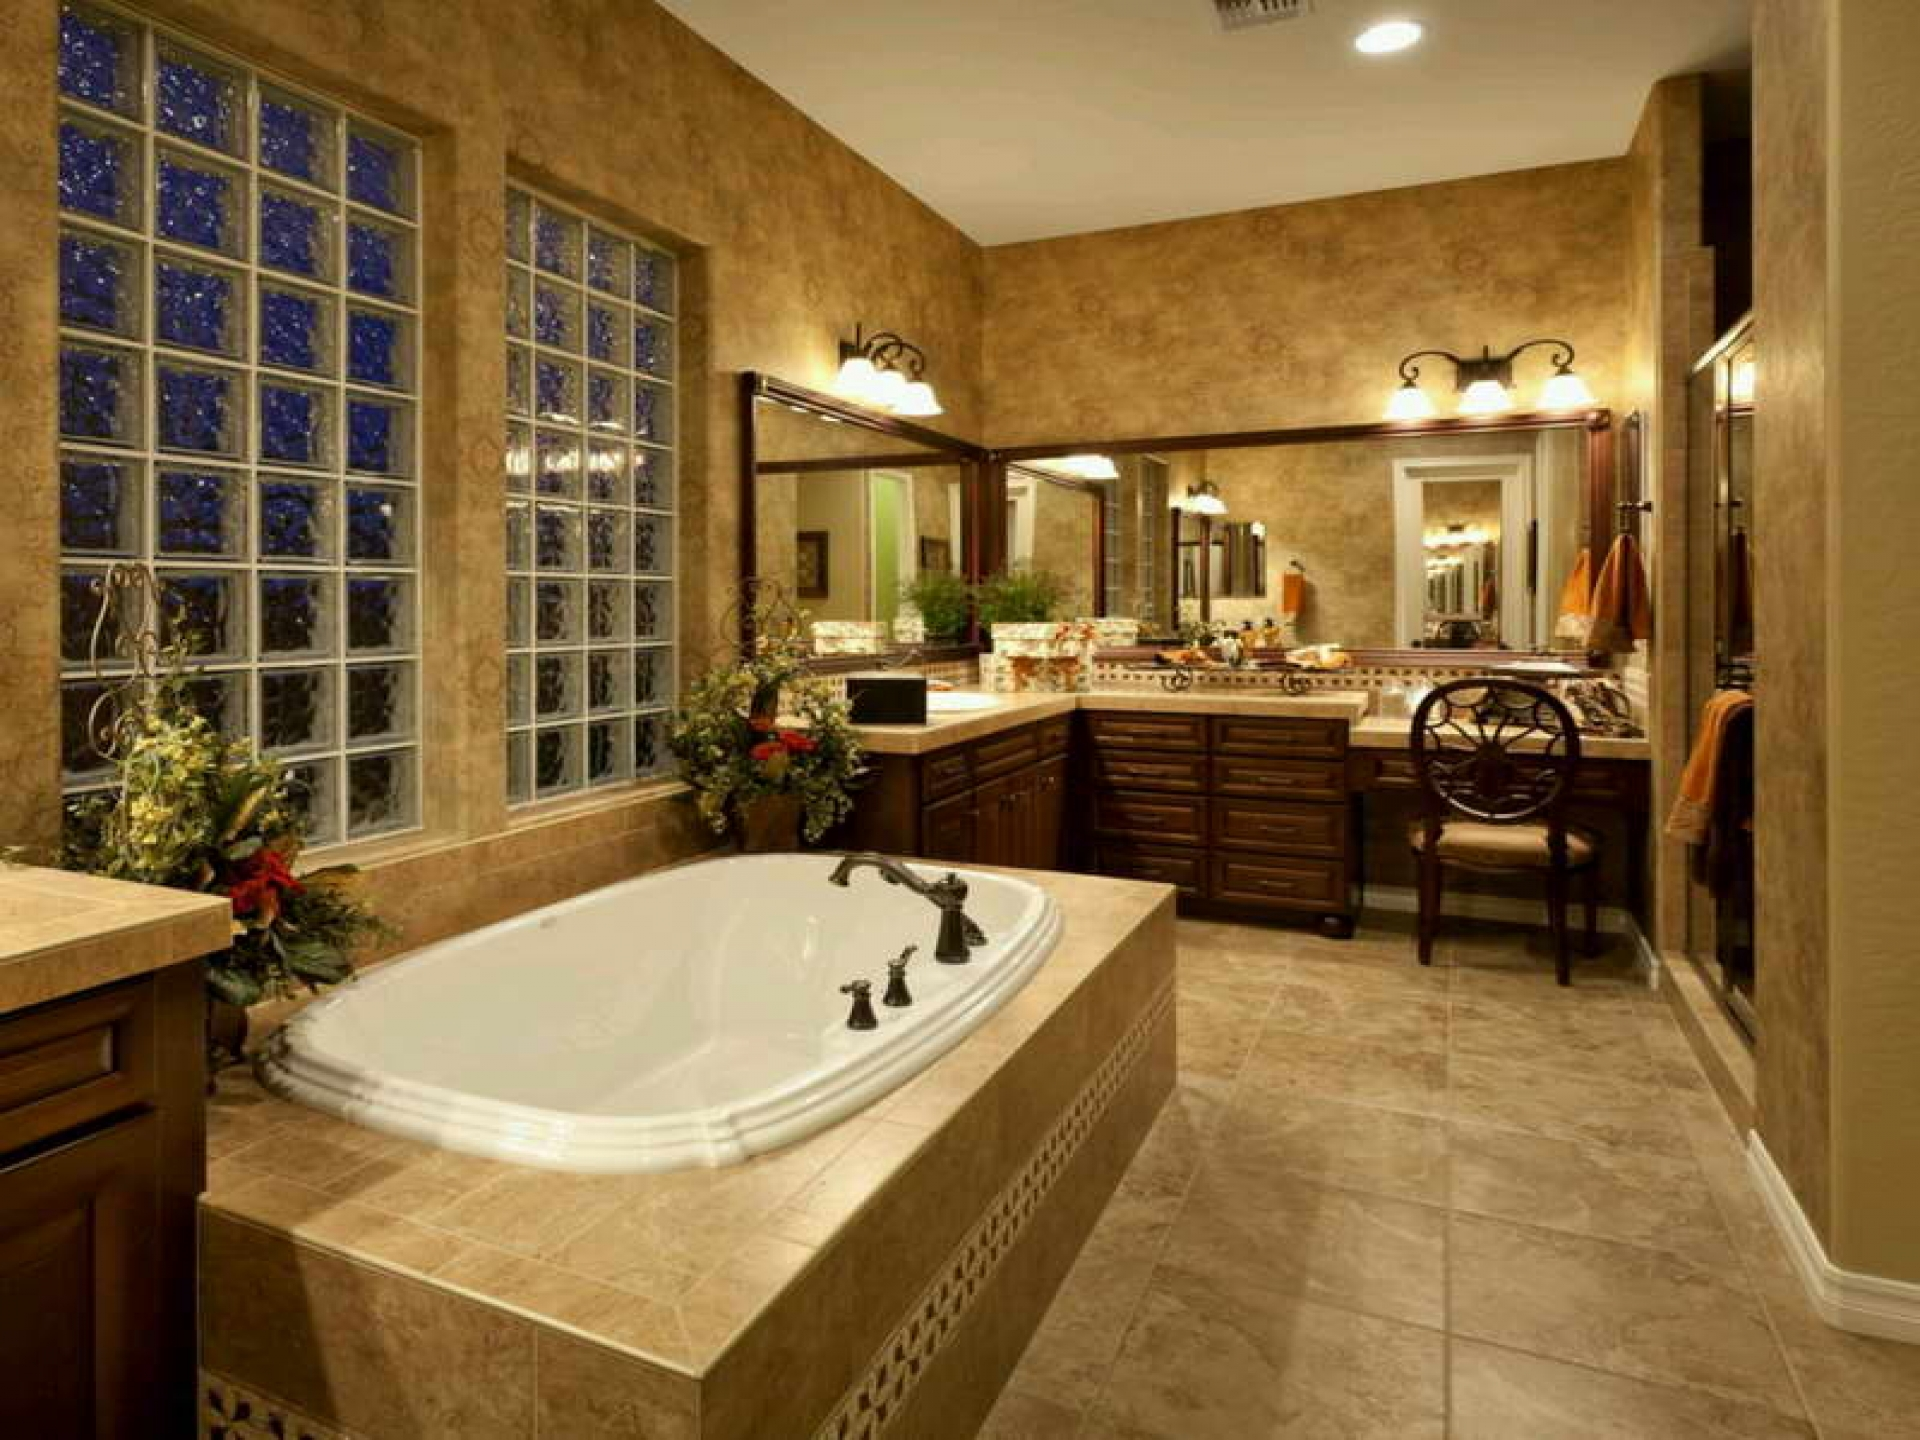 100 amazing bathroom ideas you 39 ll fall in love with for Bath design ideas